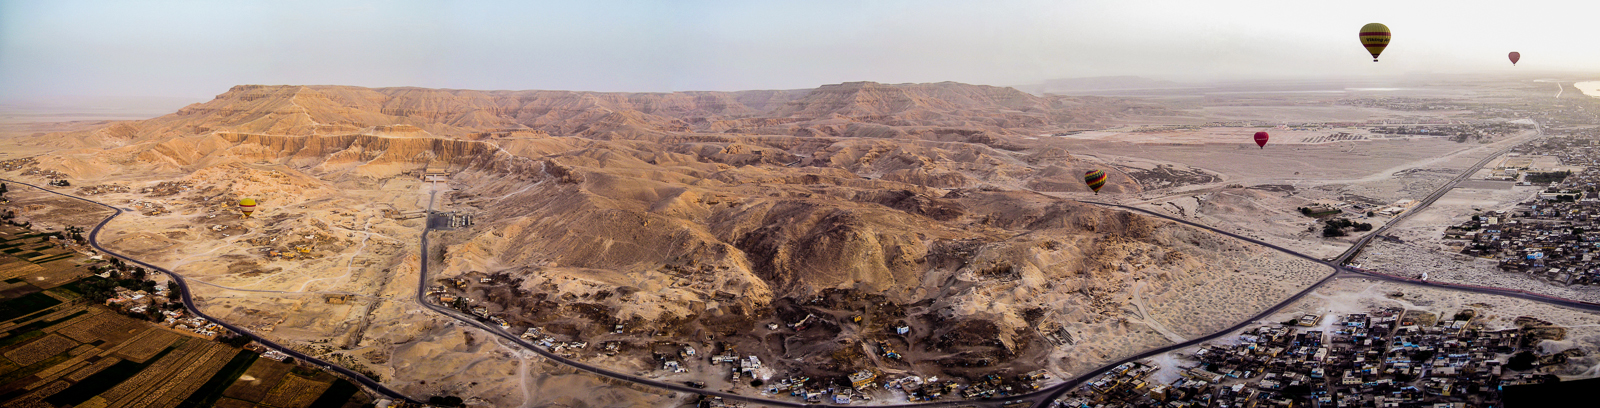 Valley of the Kings from the air